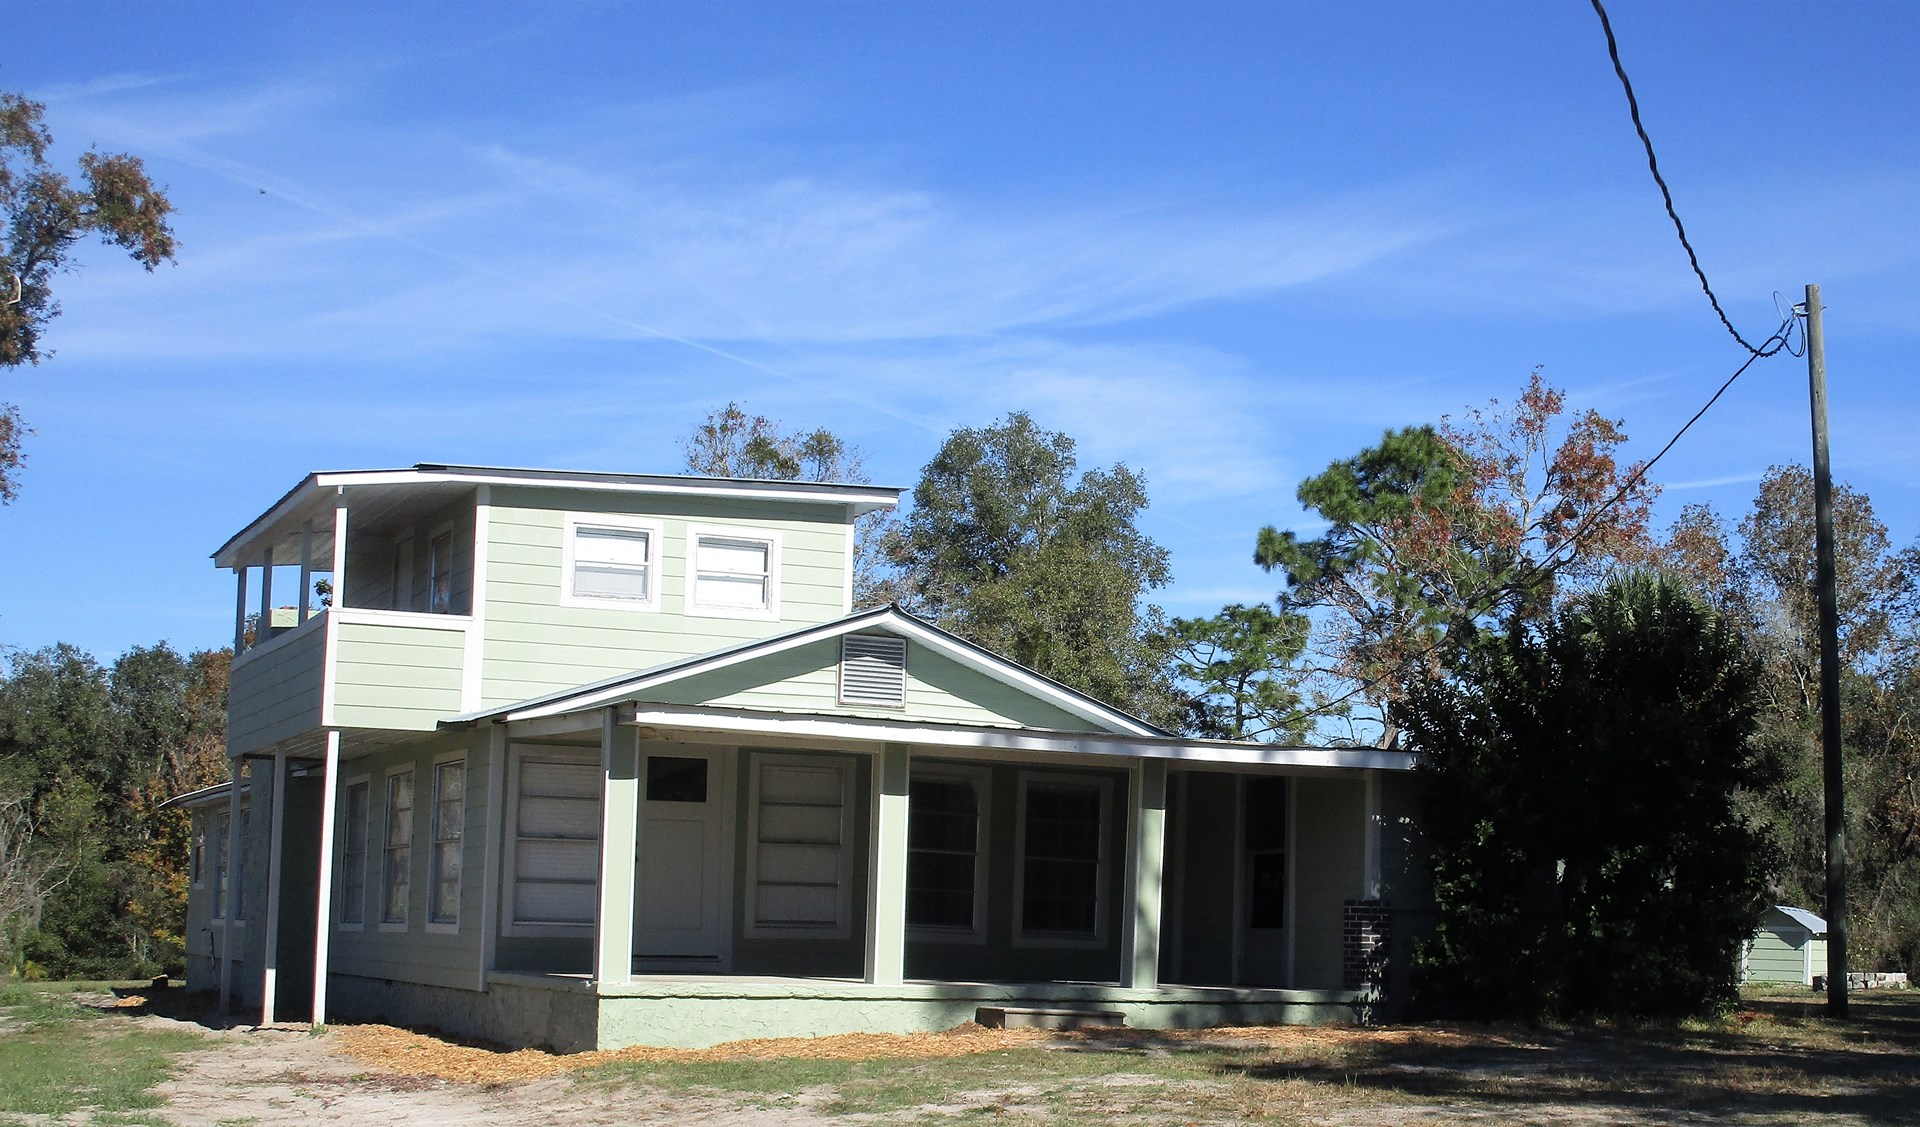 Farm House For Sale with Acreage in Chiefland, Florida